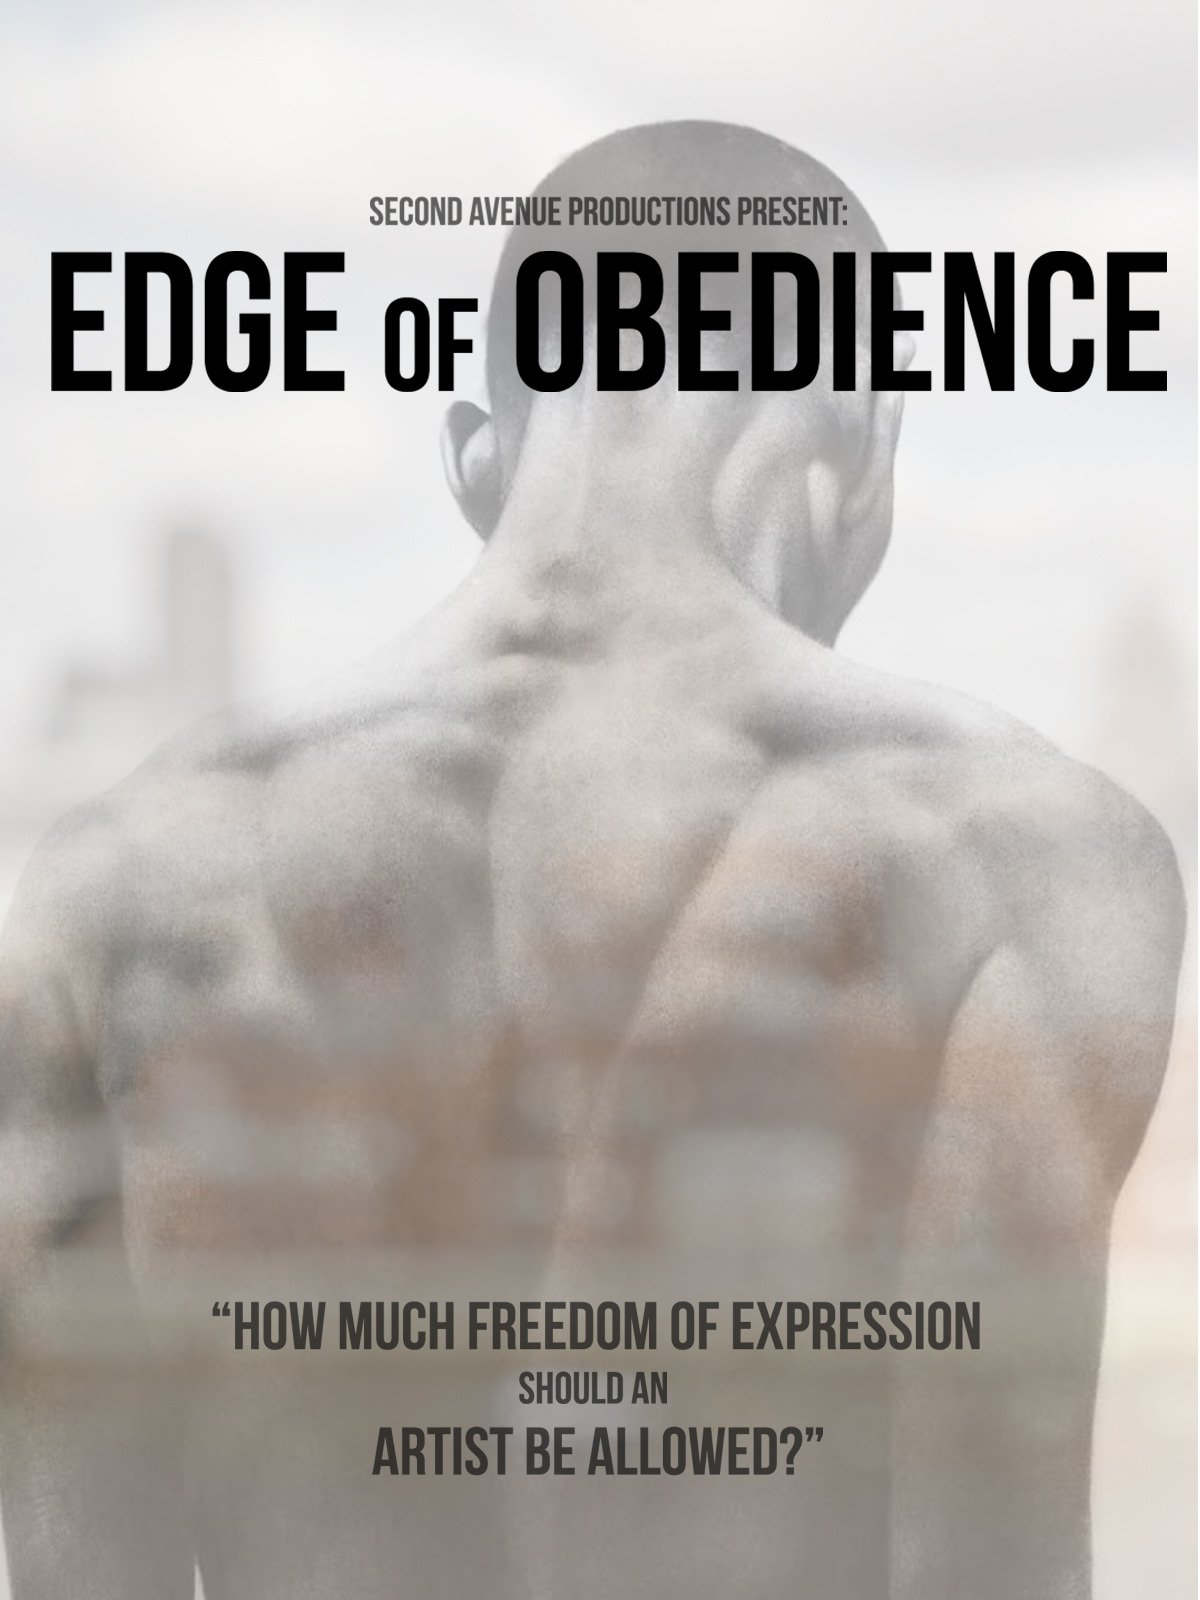 Edge of Obedience